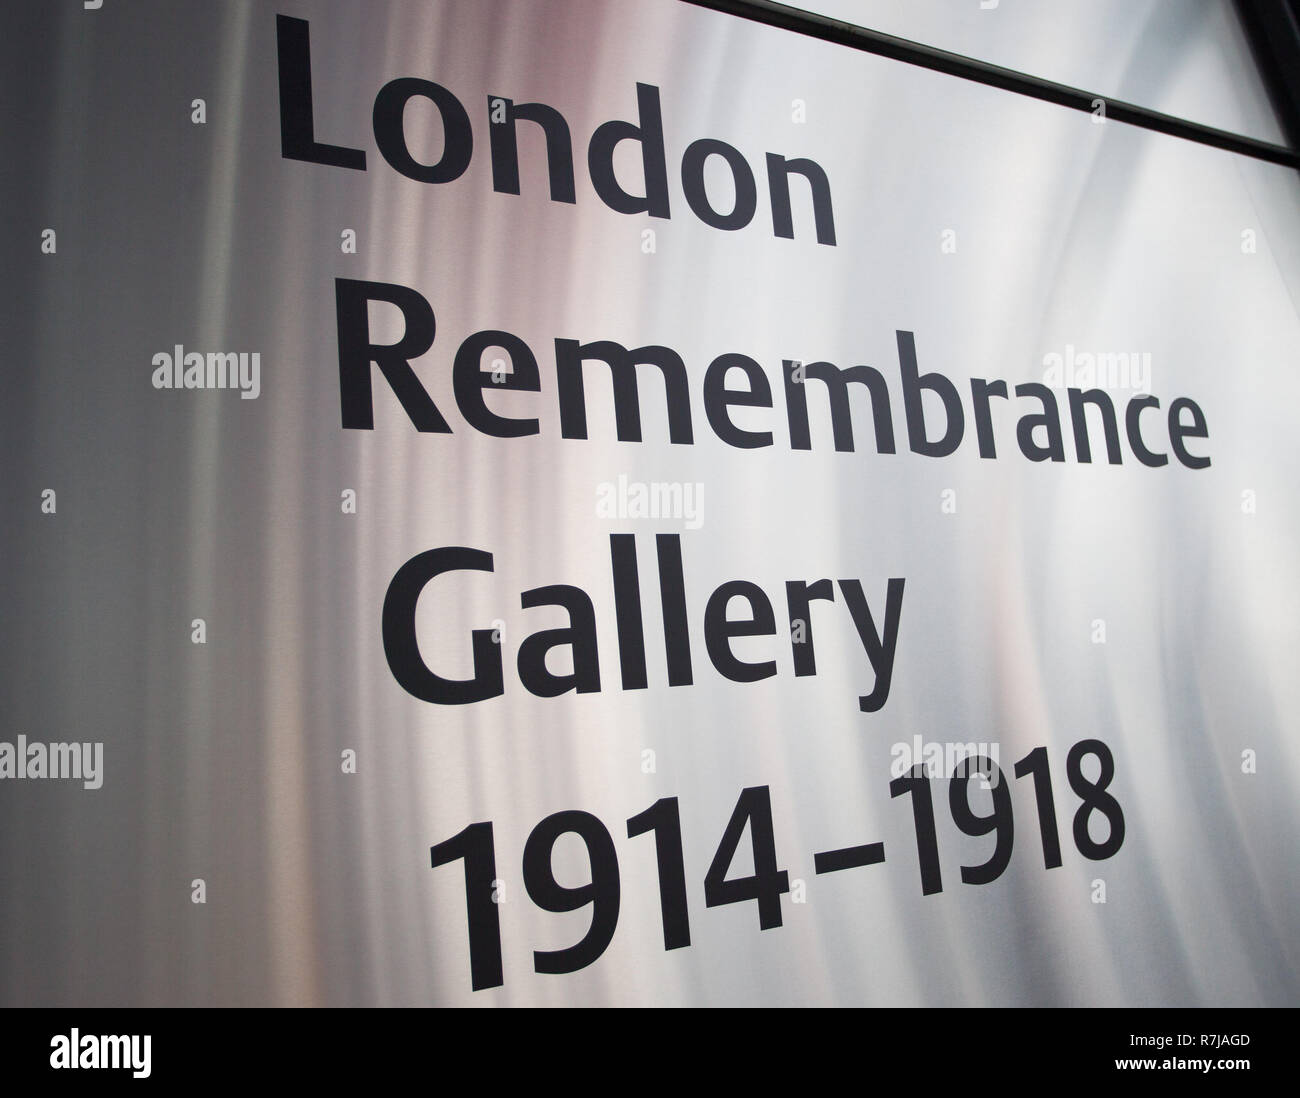 Sadiq Khan unveils the London Remembrance Gallery which contains stories of Londoners wartime memories as well as a permanent memorial.  Tony Arbour AM also delivers a speech on behalf of London Assembly Members.   The London Remembrance Gallery features a scarlet 'cloud' of 48,000 poppies, suspended from the ceiling; the art installation is presented in collaboration with the London Bridge branch of the Royal British Legion.  Featuring: Atmosphere, View Where: London, United Kingdom When: 09 Nov 2018 Credit: Wheatley/WENN - Stock Image